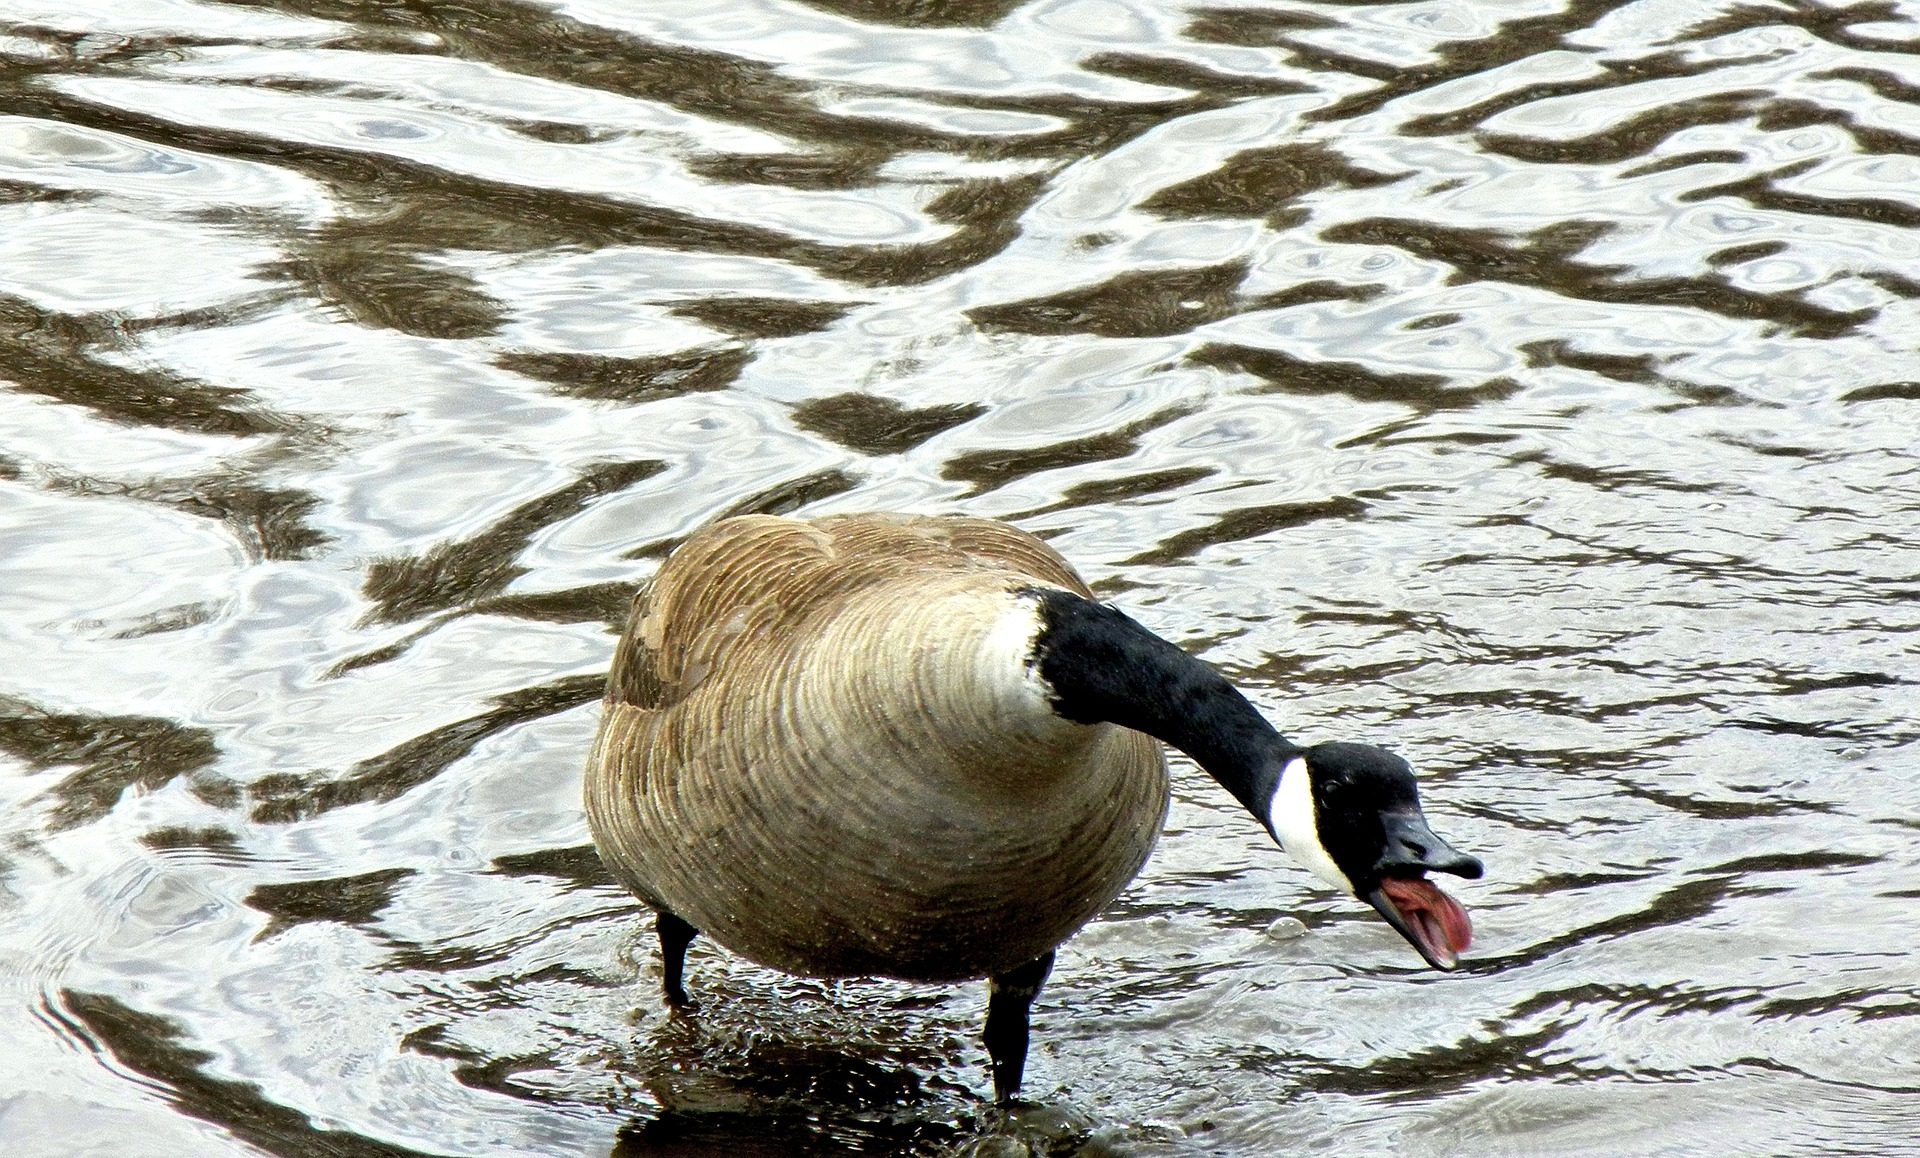 canada goose - nesting habits of canada geese